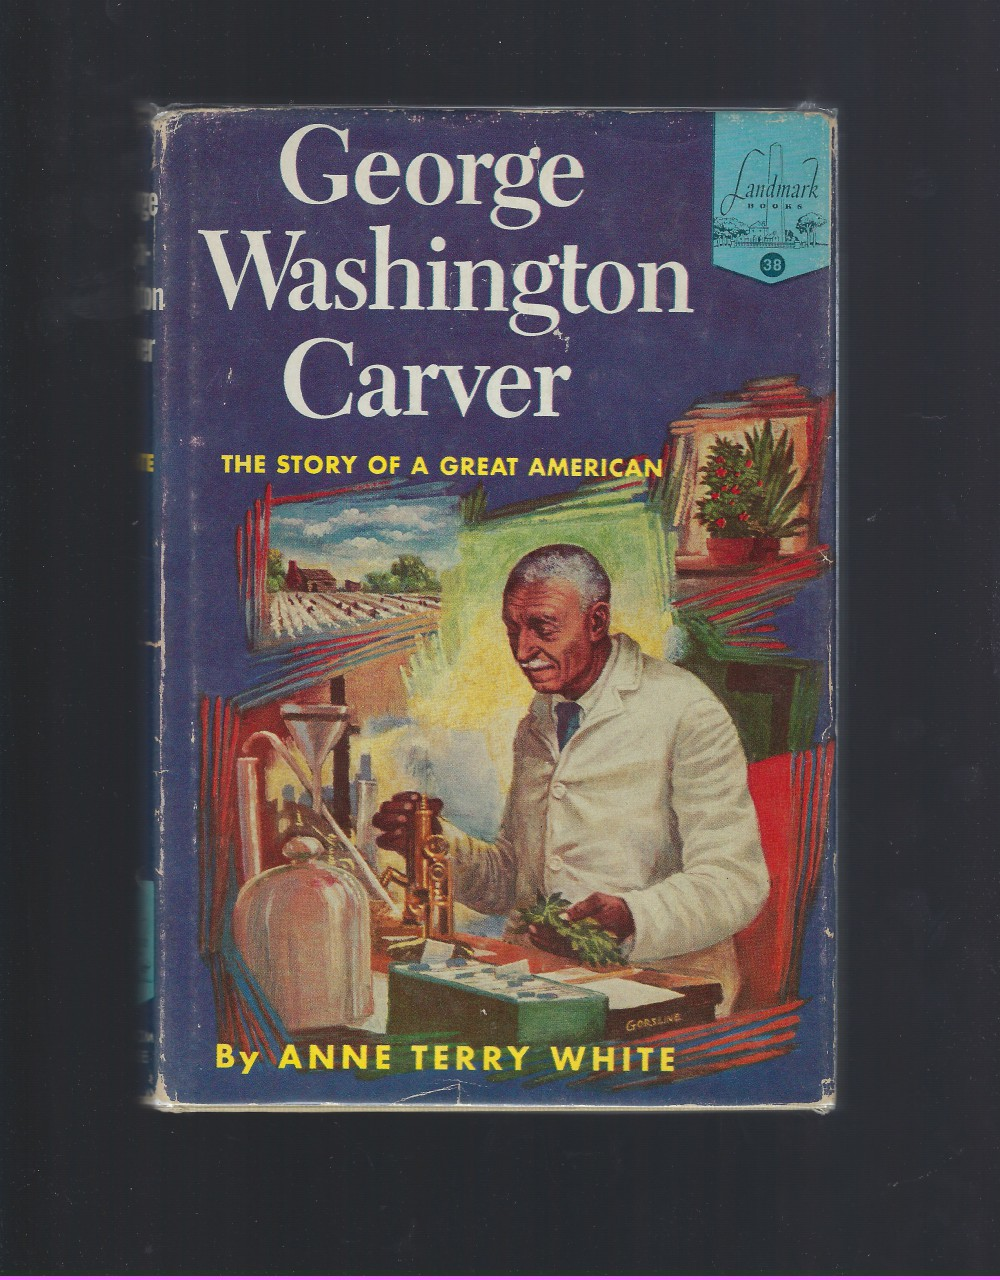 George Washington Carver Landmark #38 HB/DJ The Story of a Great American, Anne Terry White; Illustrator: Douglas Gorsline